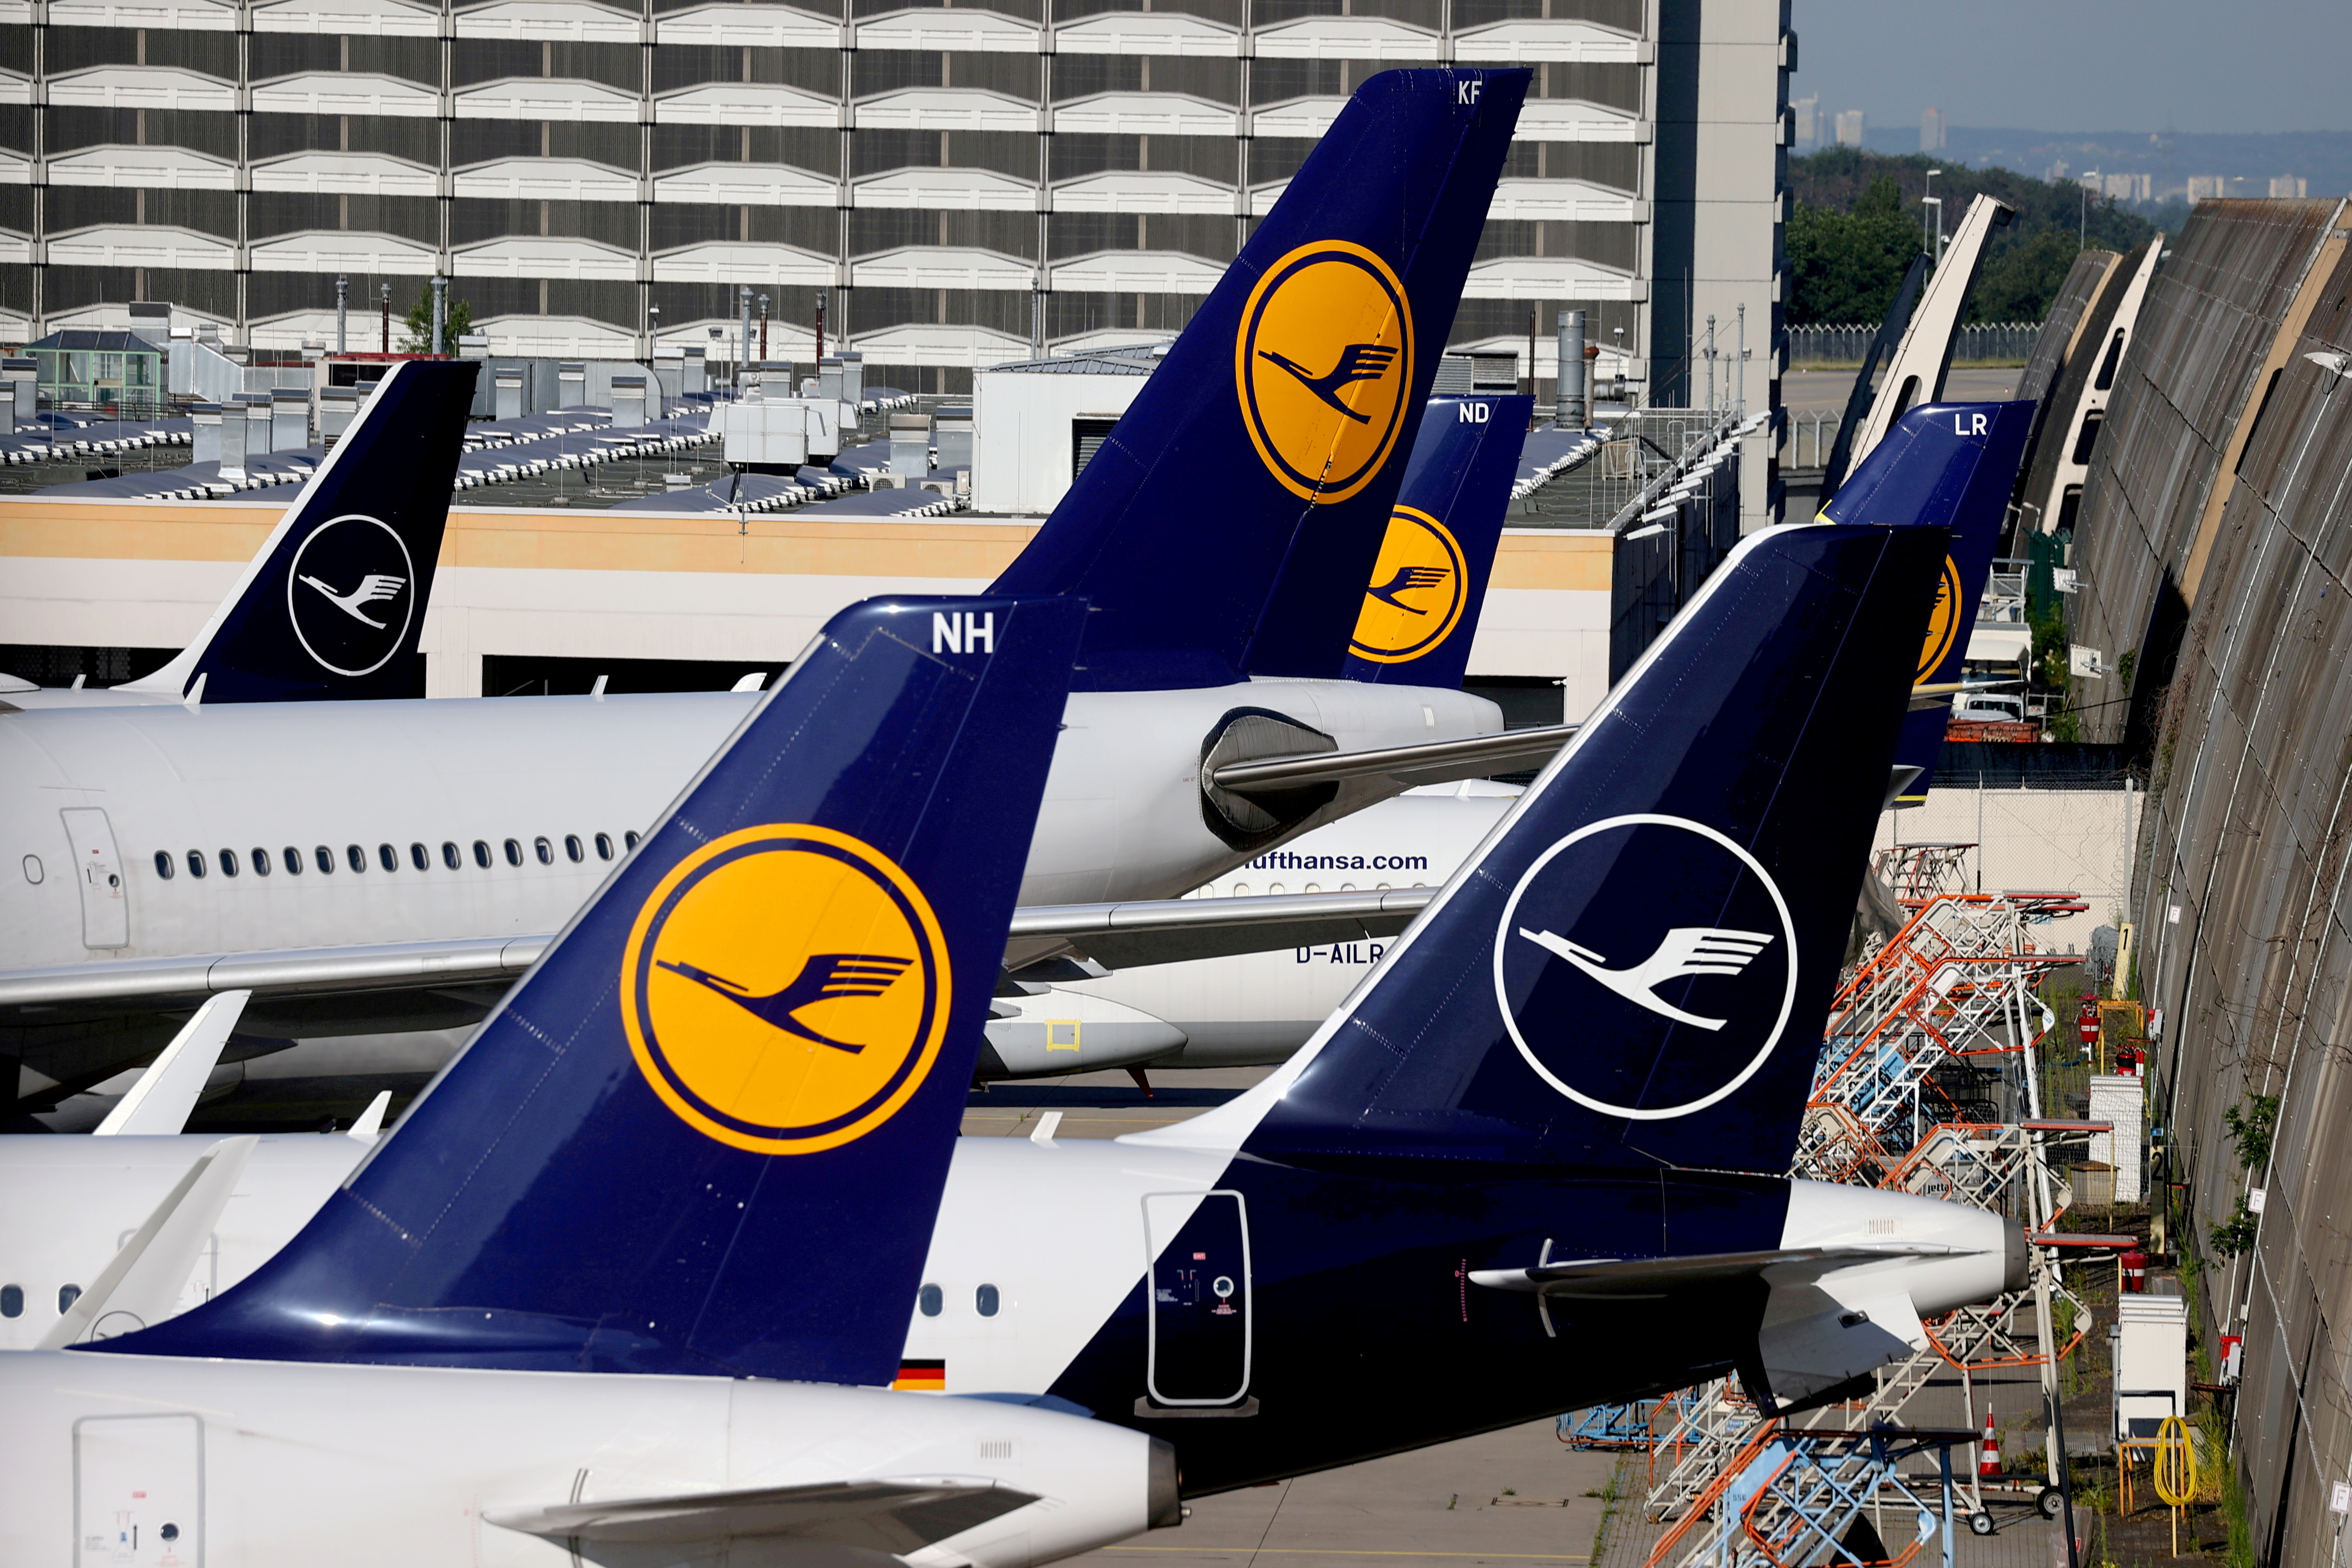 Lufthansa planes are seen parked on the tarmac of Frankfurt Airport, Germany June 25, 2020. REUTERS/Kai Pfaffenbach/File Photo